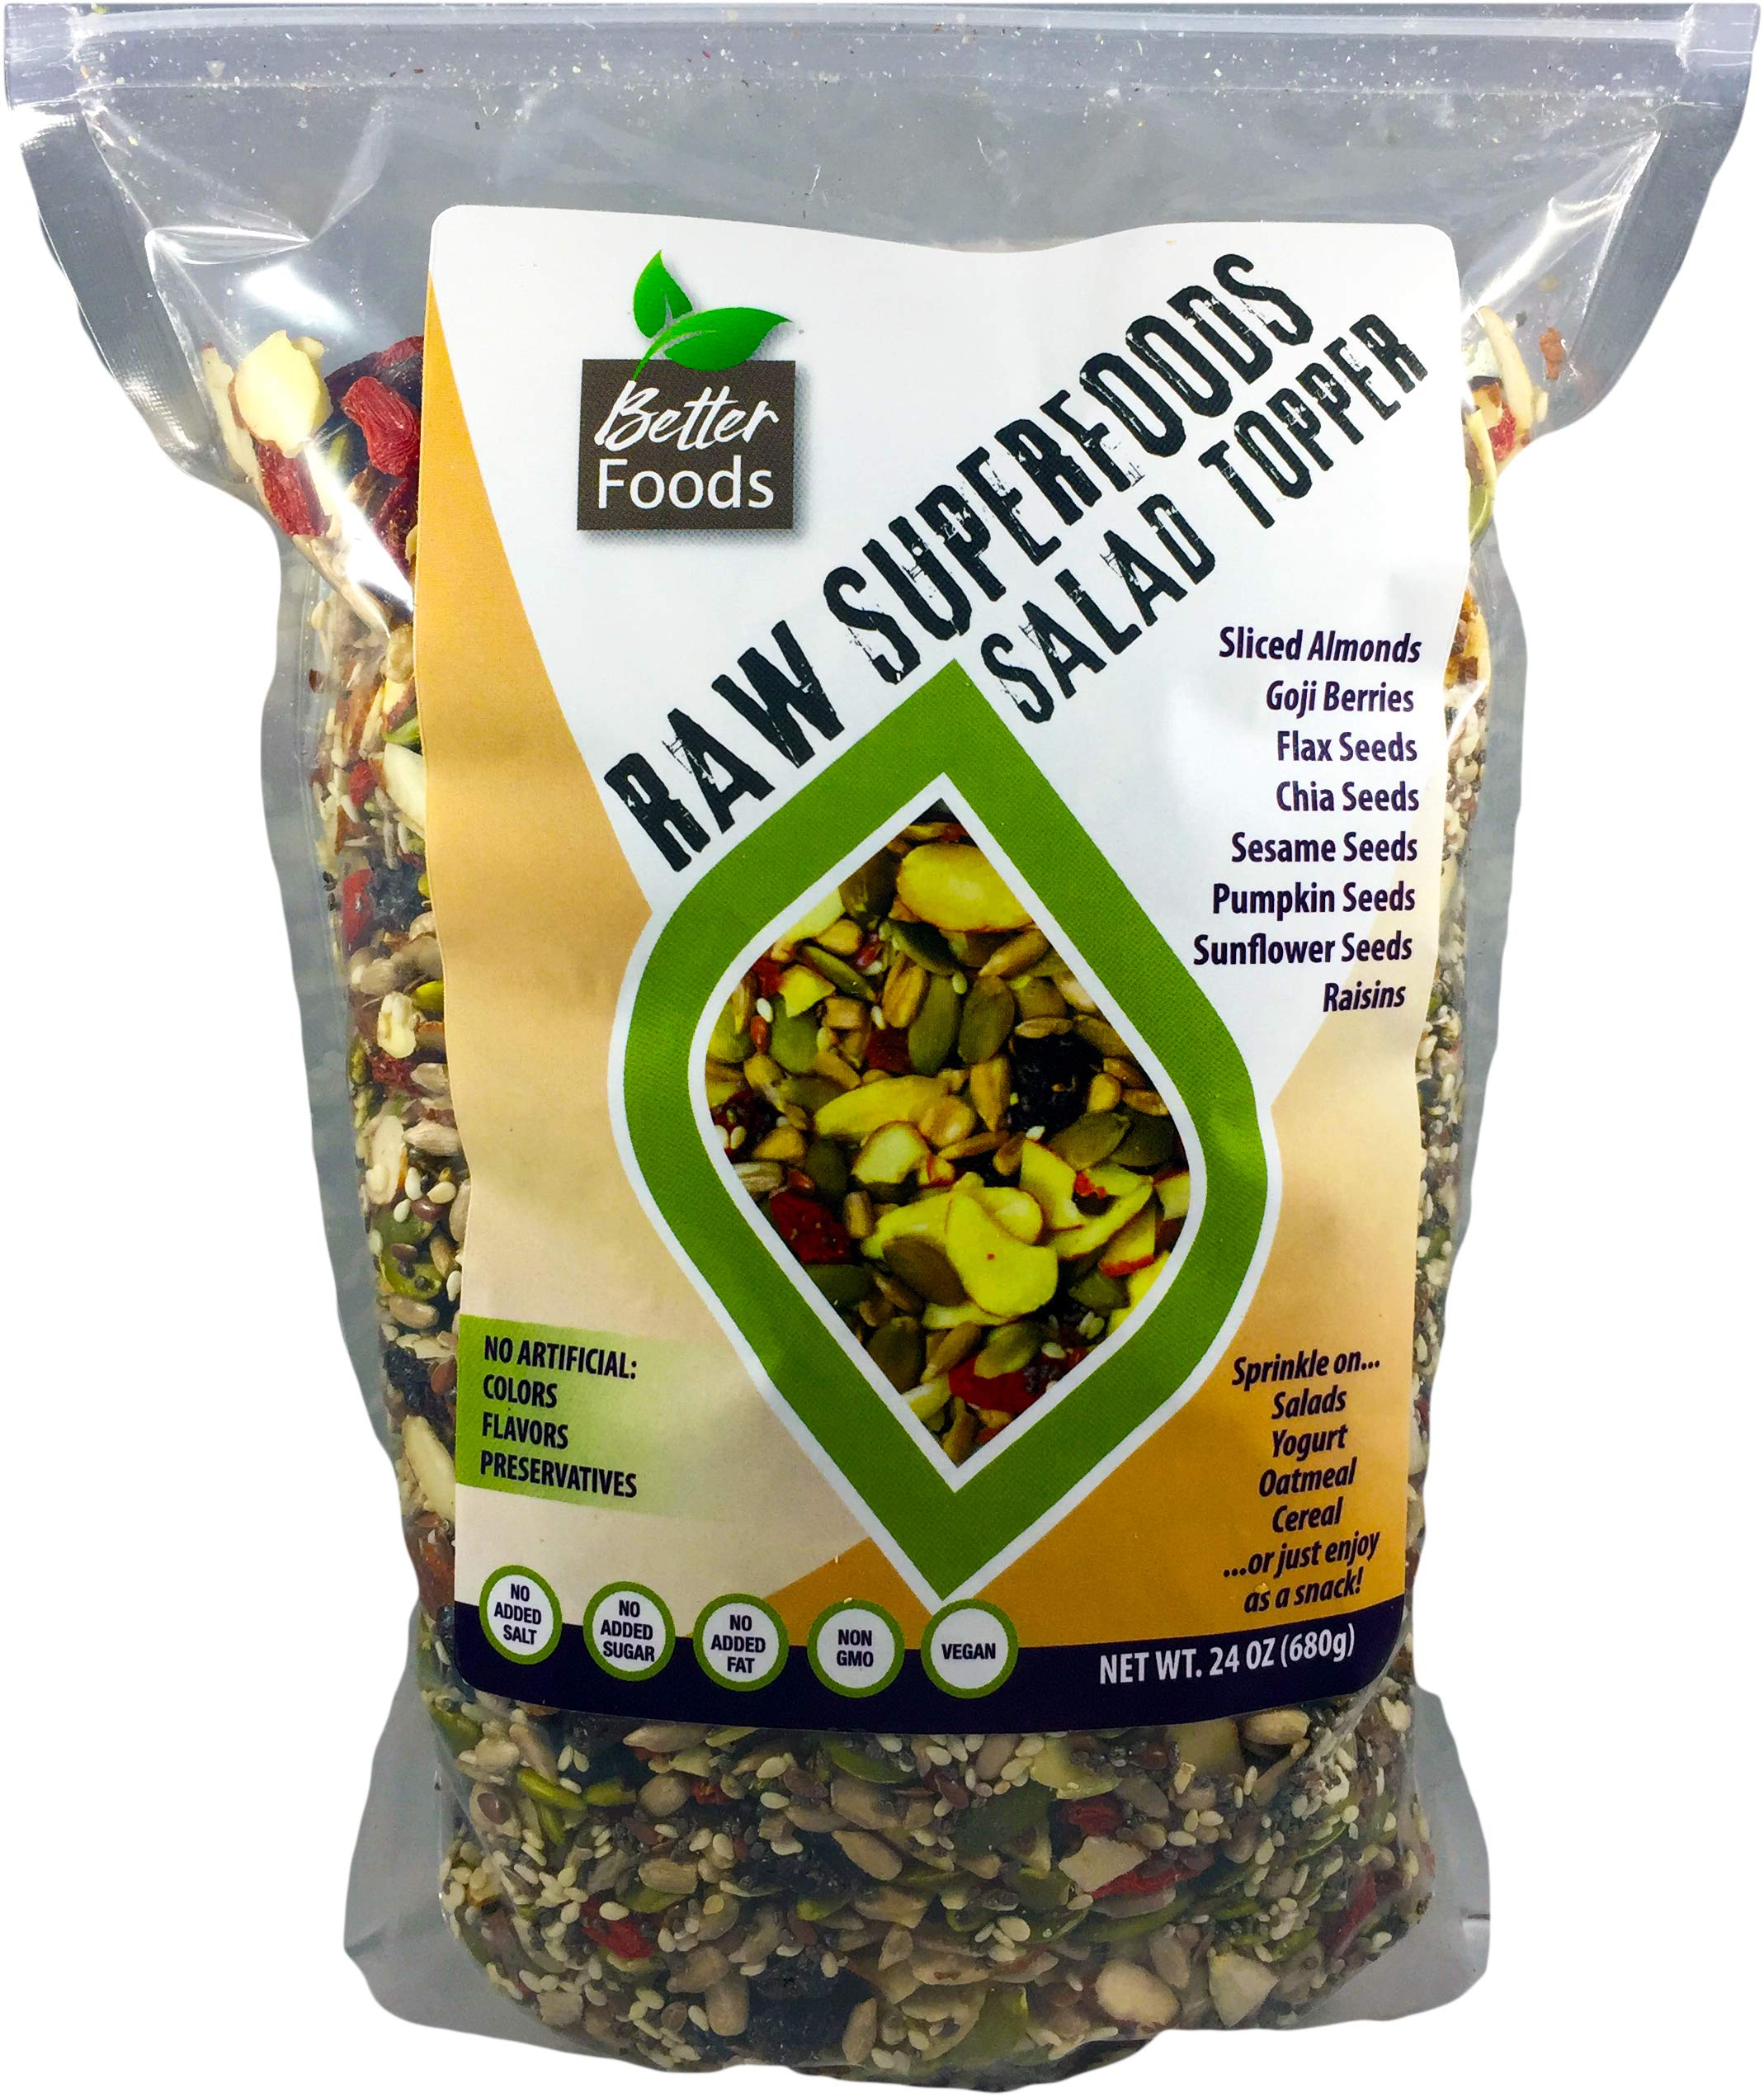 Raw Superfoods Salad Toppings Mix (Goji Berries, Raisins, Almonds, Chia, Flax, Pumpkin, Sesame and Sunflower Seeds) 24 oz by BetterFoods